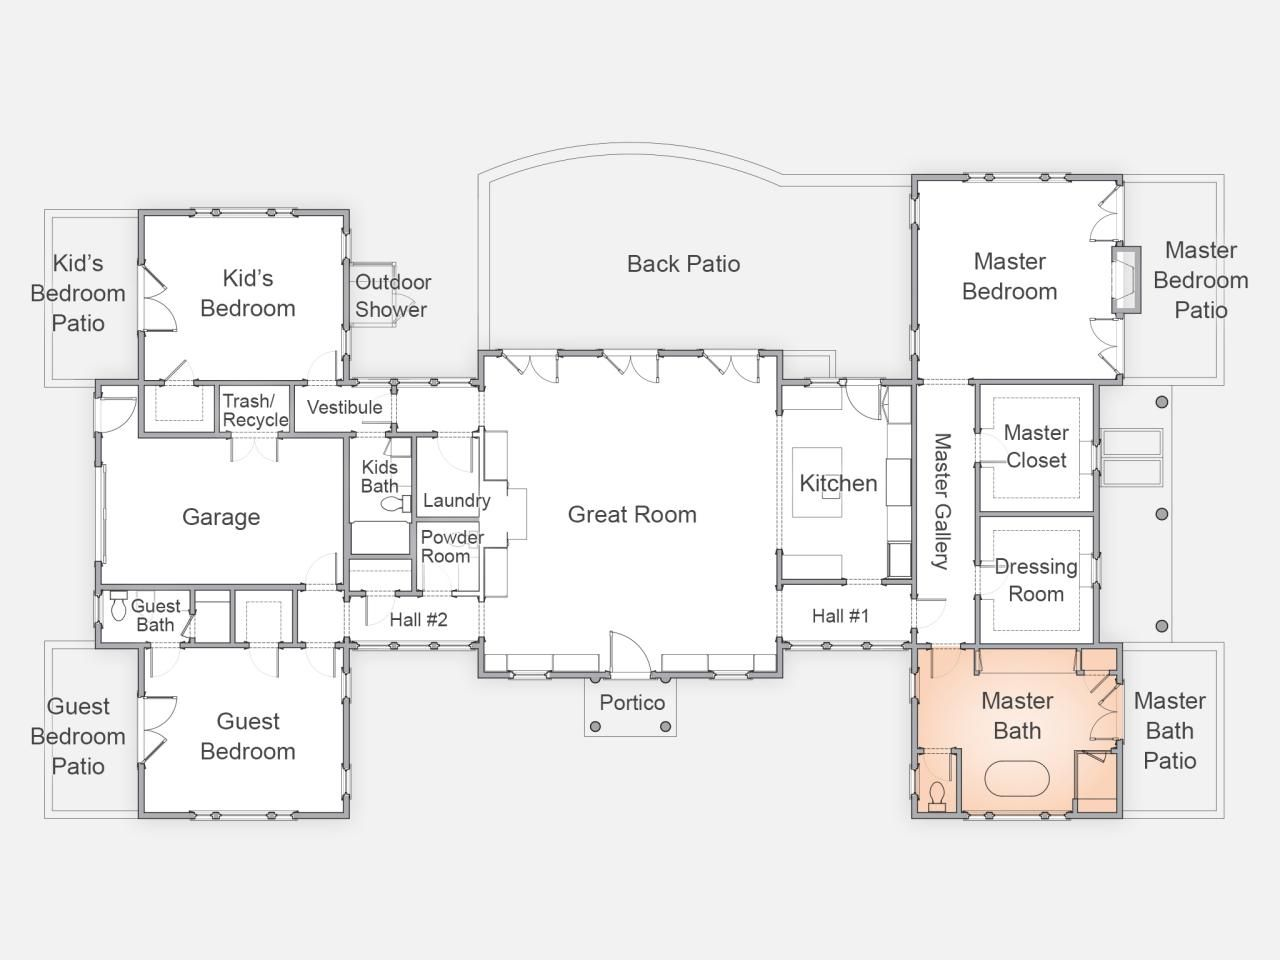 dream home 2015 floor plan hgtv building and mountain house plans